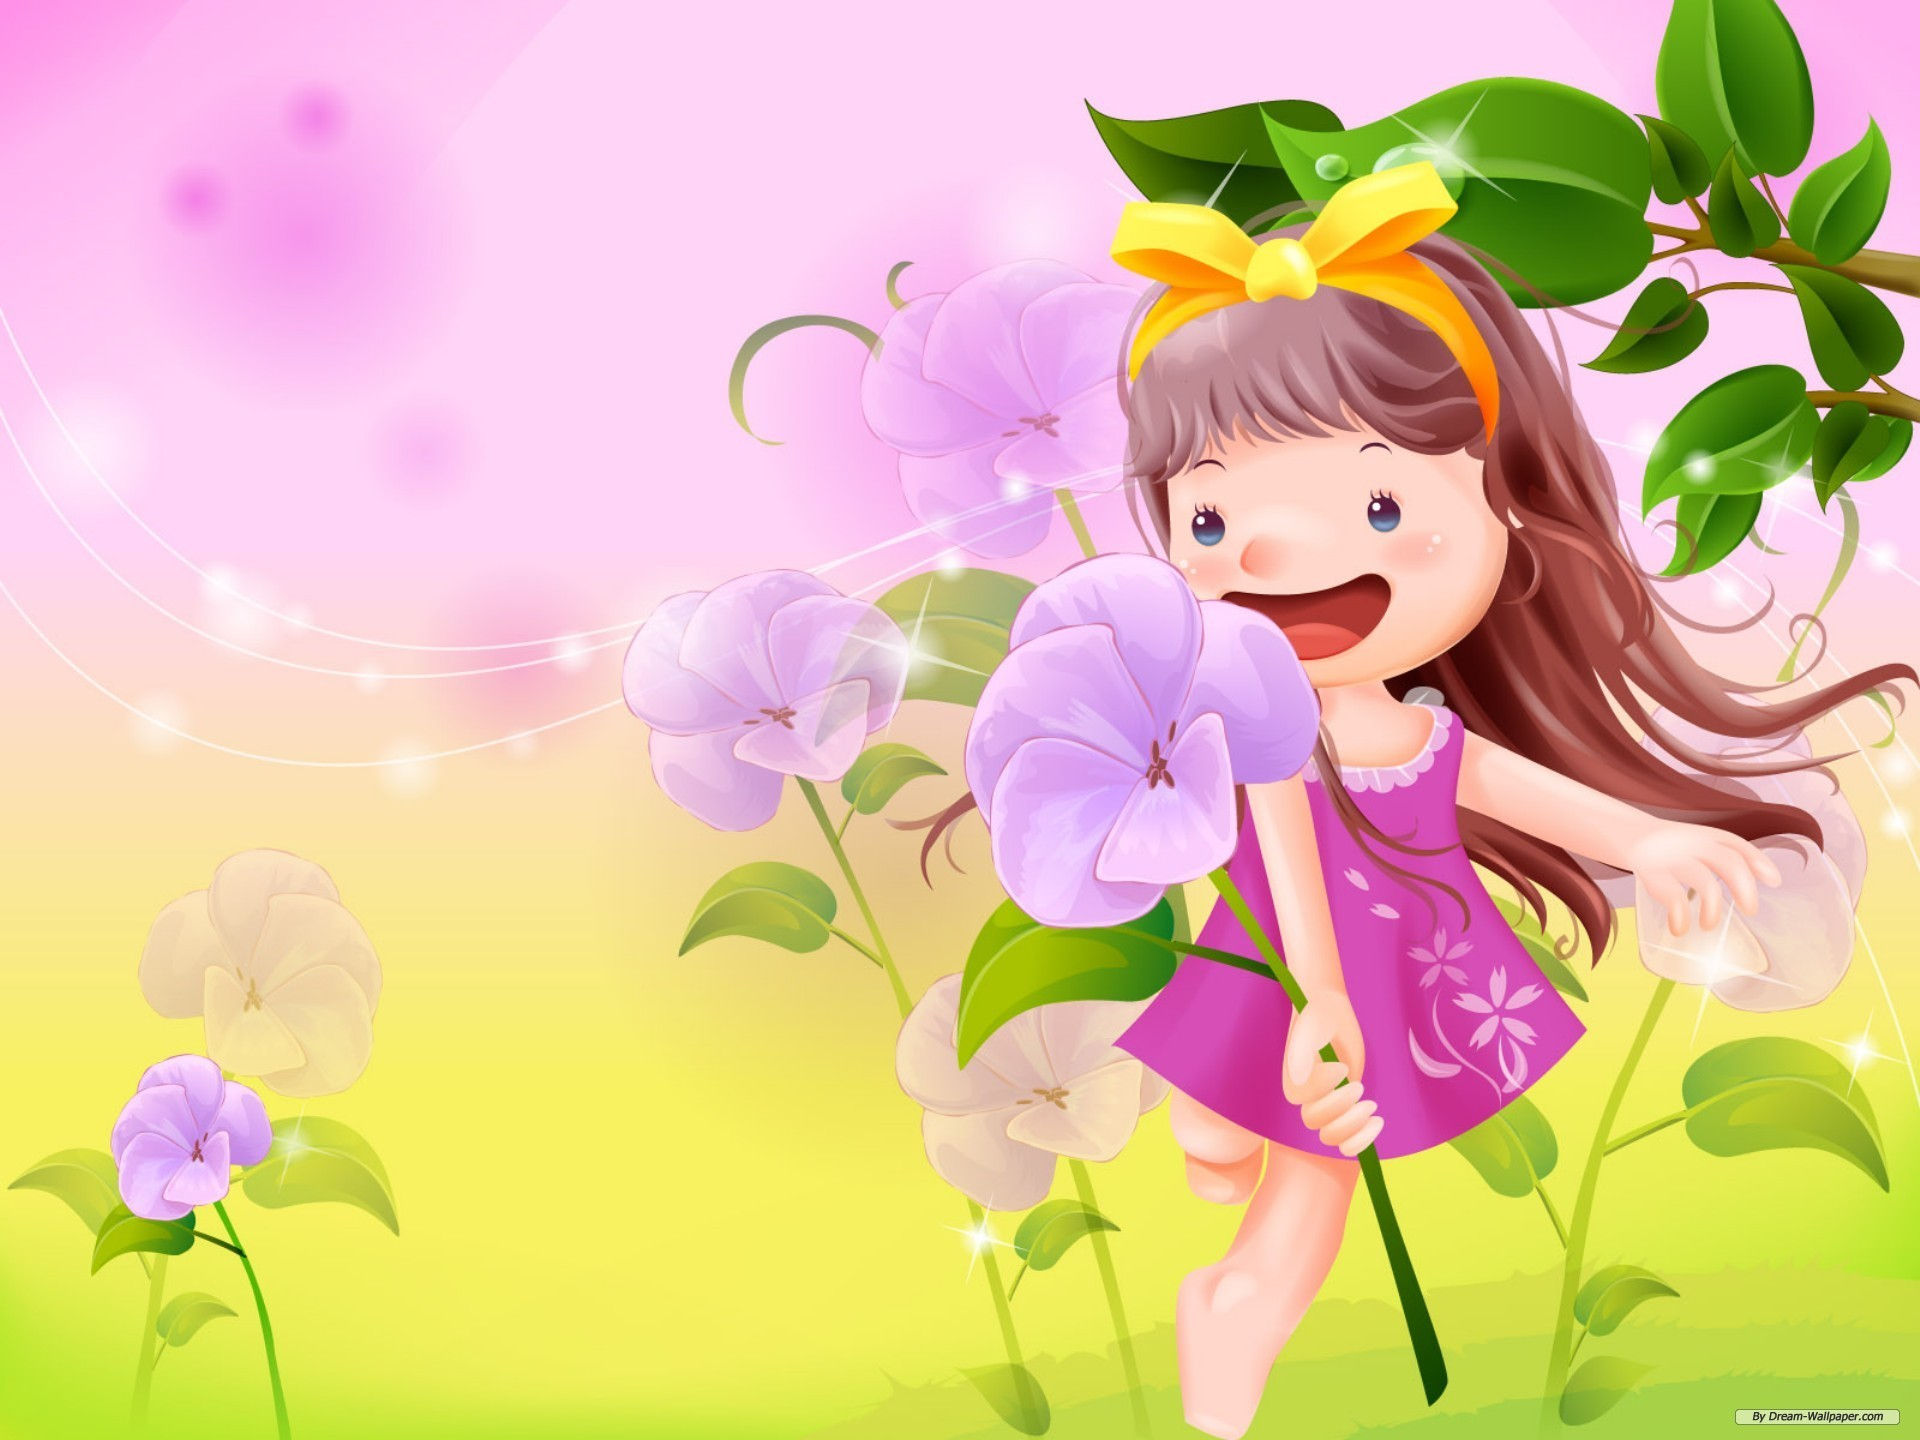 Cute cartoon character wallpaper 61 images 1920x1440 free cartoon wallpapers backgrounds toptenpack free cartoon wallpapers backgrounds toptenpack voltagebd Images